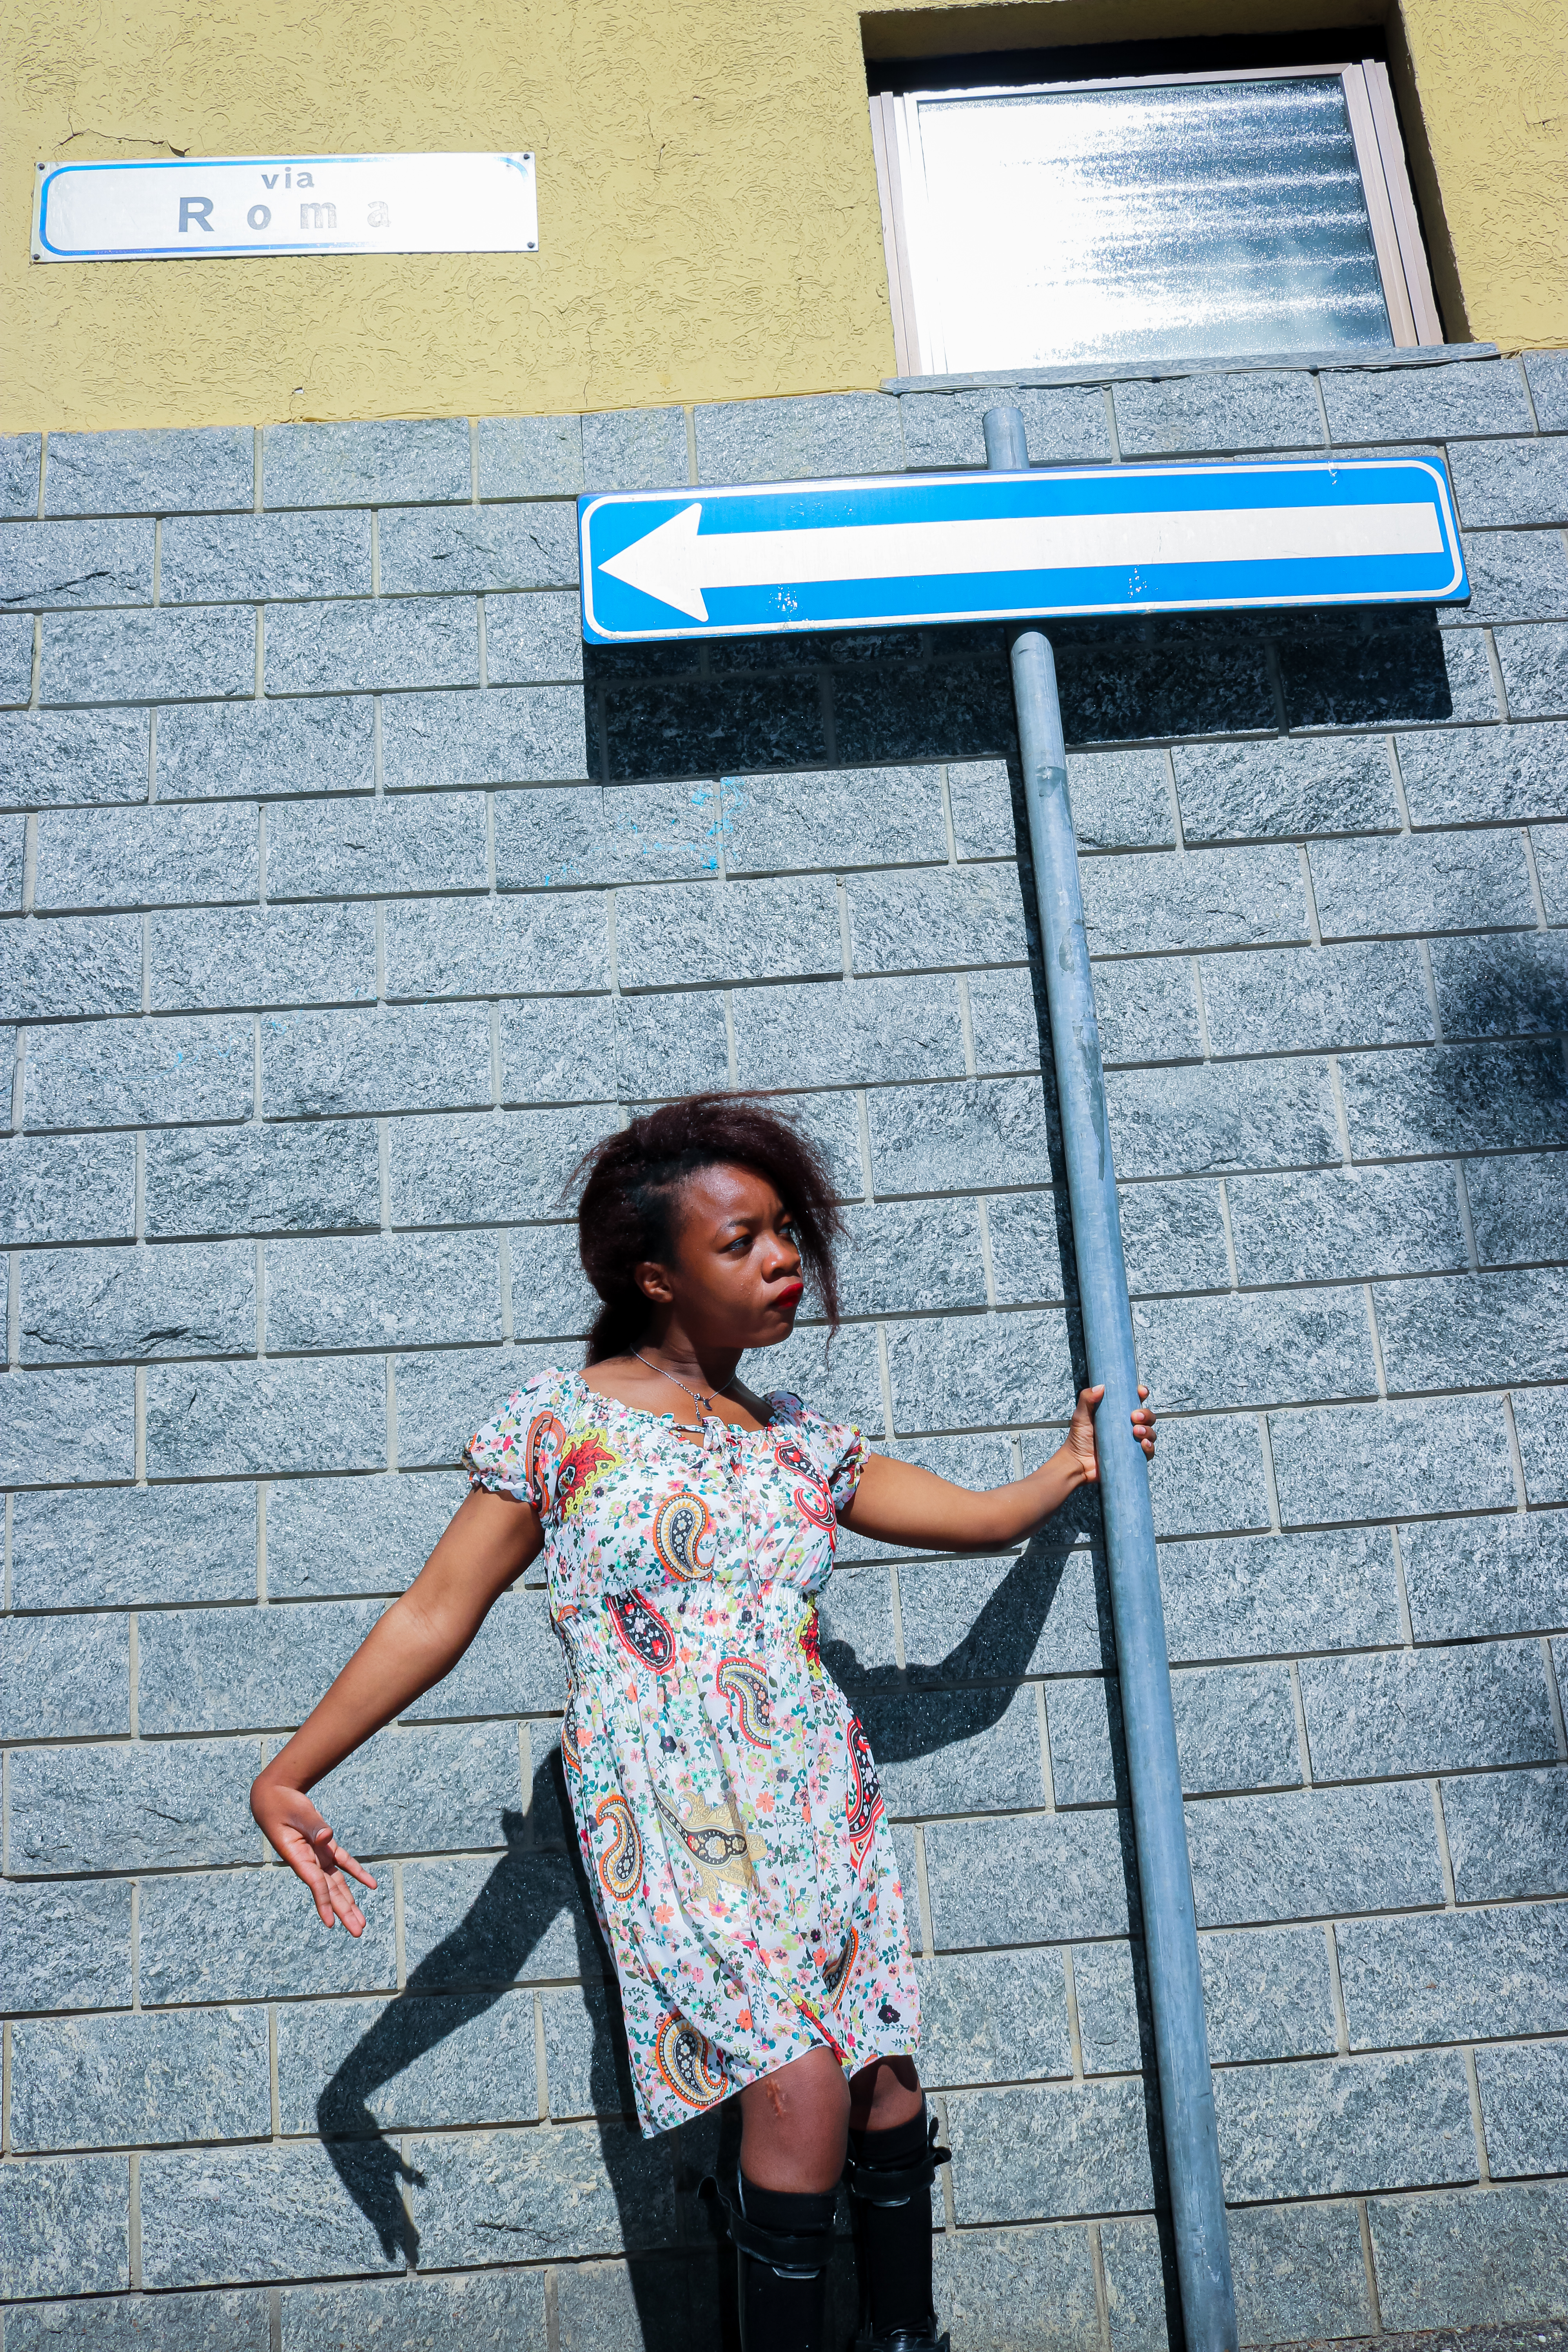 Rachy standing in front of a road sign with an arrow pointed left